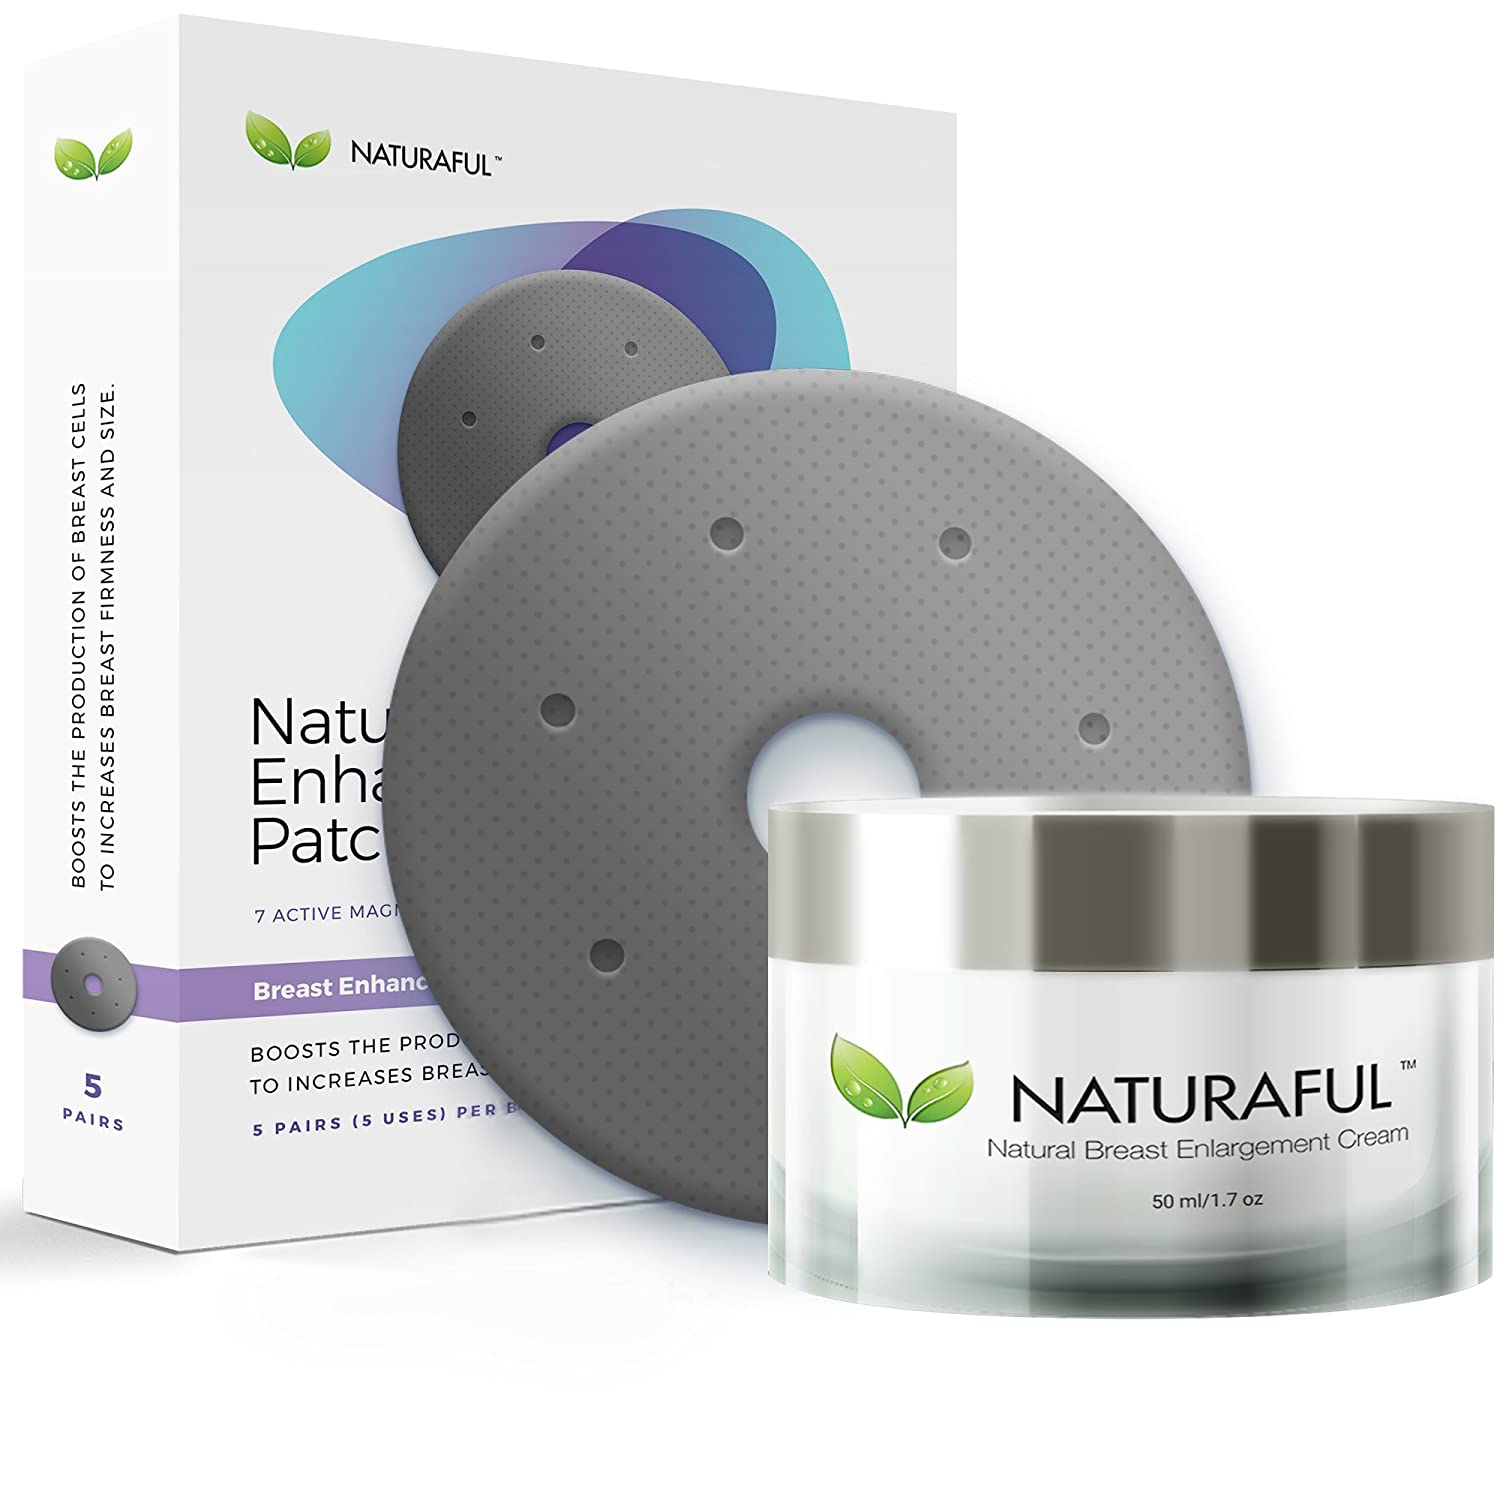 3 PACK NEW NATURAFUL - Breast Enhancement Cream & Enhancement Patch BUNDLE - Natural Breast Enlargement, Firming and Lifting | Includes Handbook | $429 Value